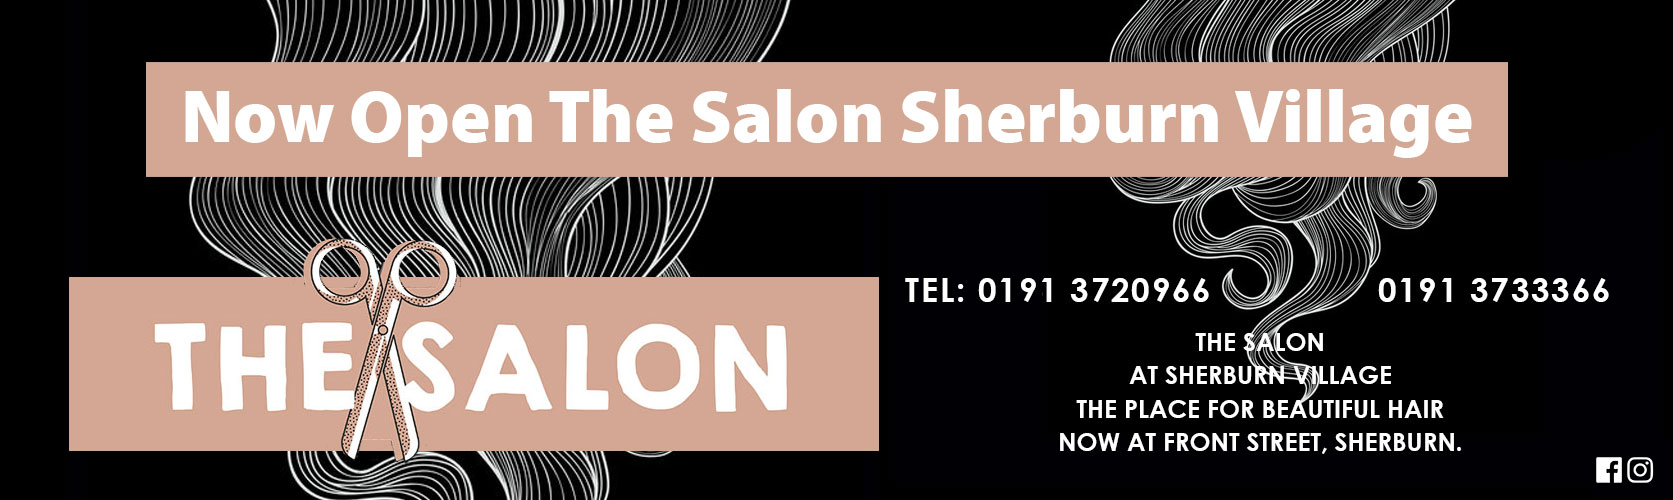 the salon, sherburn village durham the best hair cuts, colours and styles